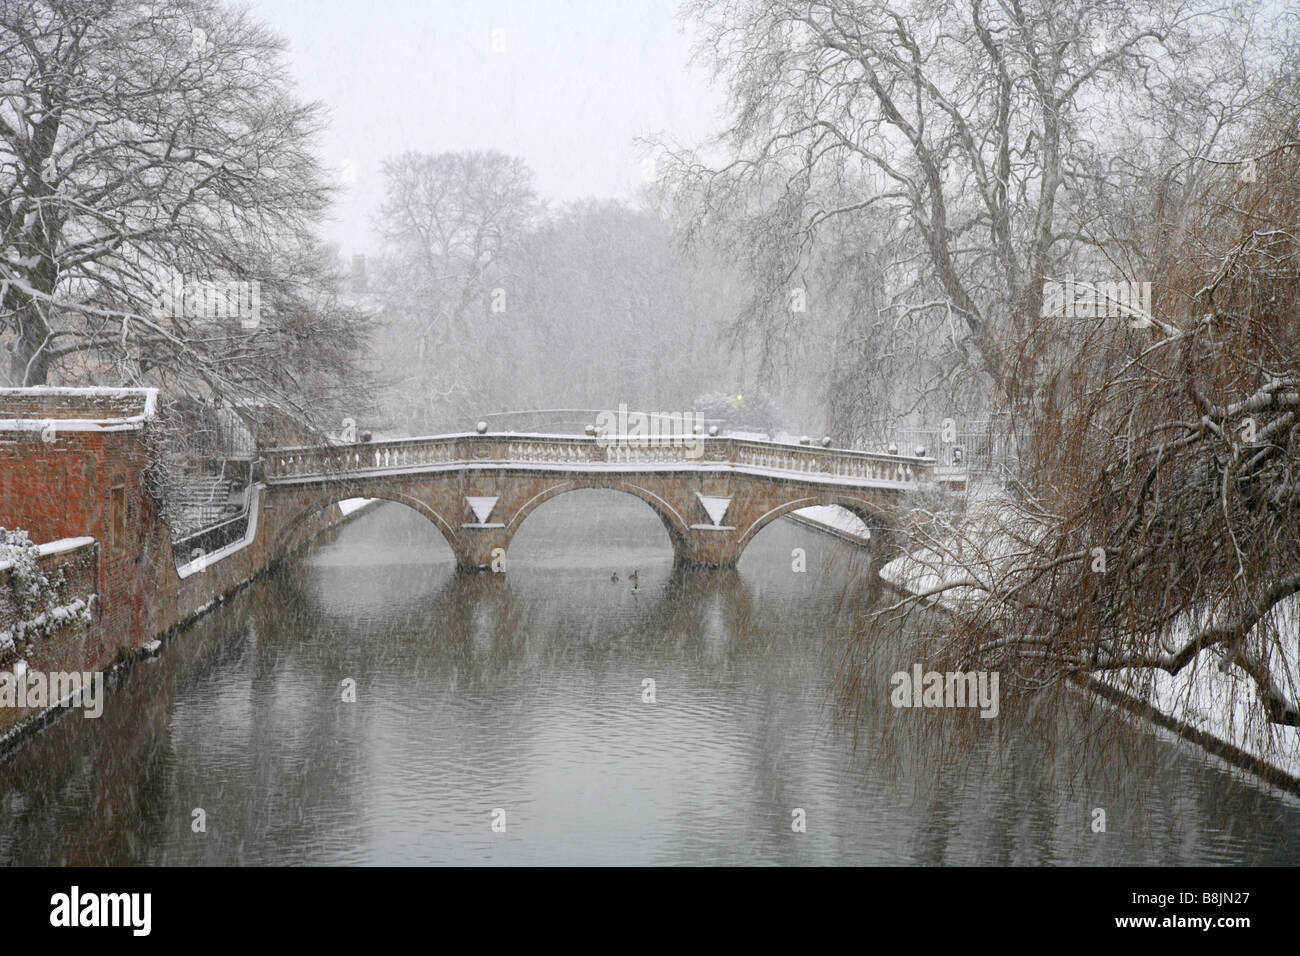 'Clare College Bridge' Cambridge University while it was snowing, river cam and trees covered in snow. English - Stock Image